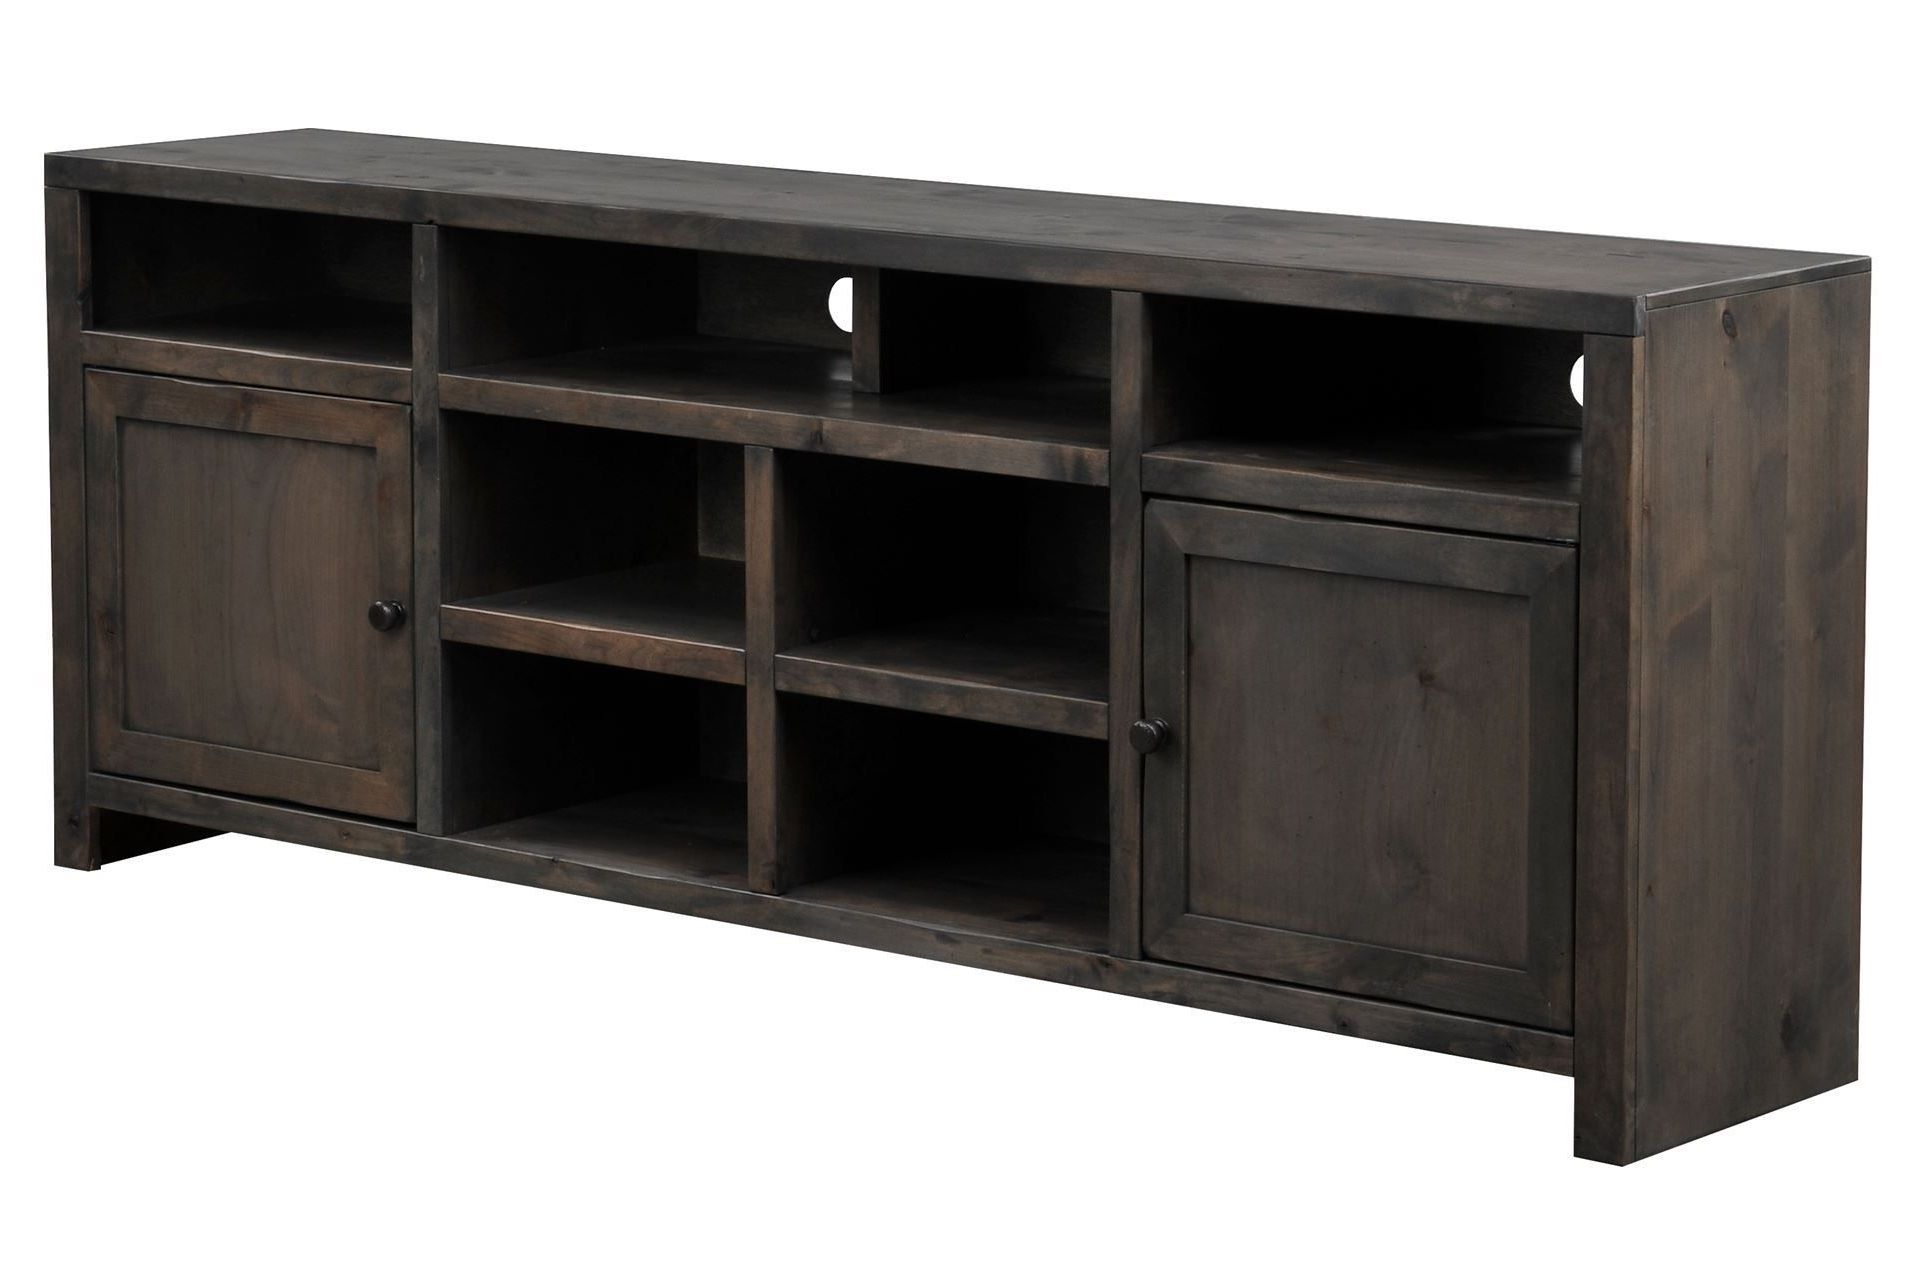 Ducar 84 Inch Tv Stand | Where The Heart Is | Pinterest | Family With Ducar 74 Inch Tv Stands (View 11 of 20)